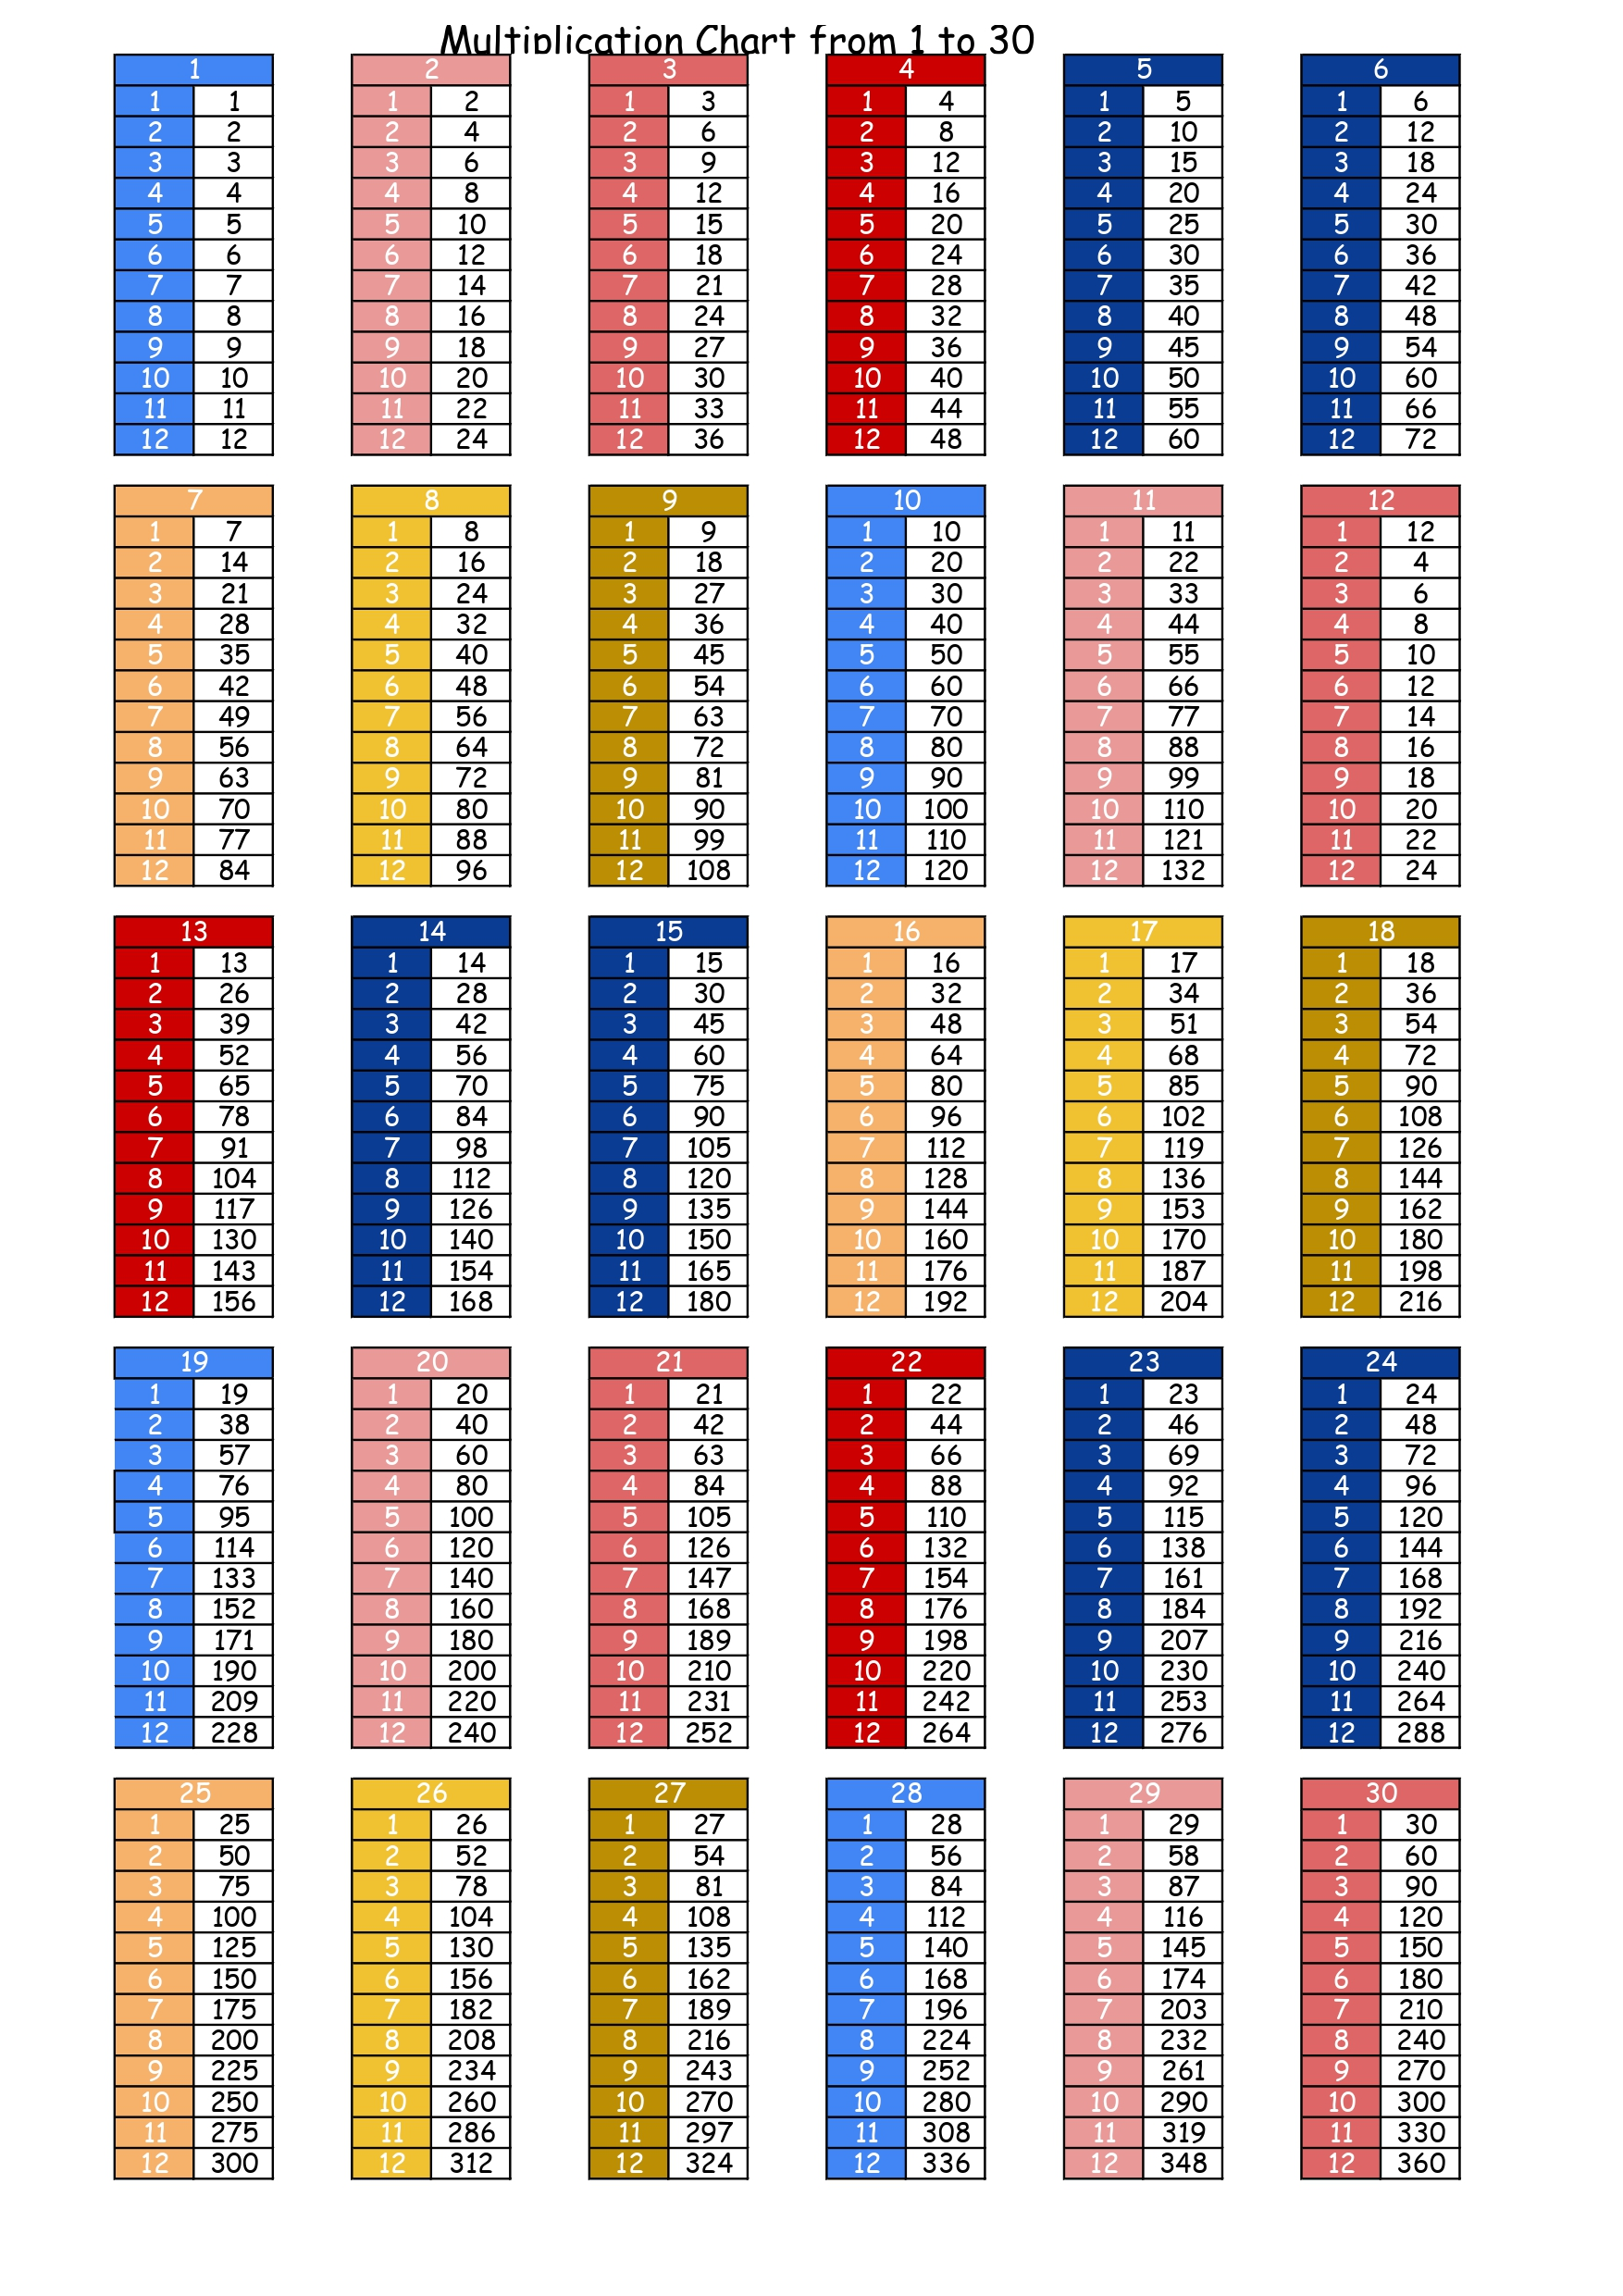 Multiplication tables from 1 to 30